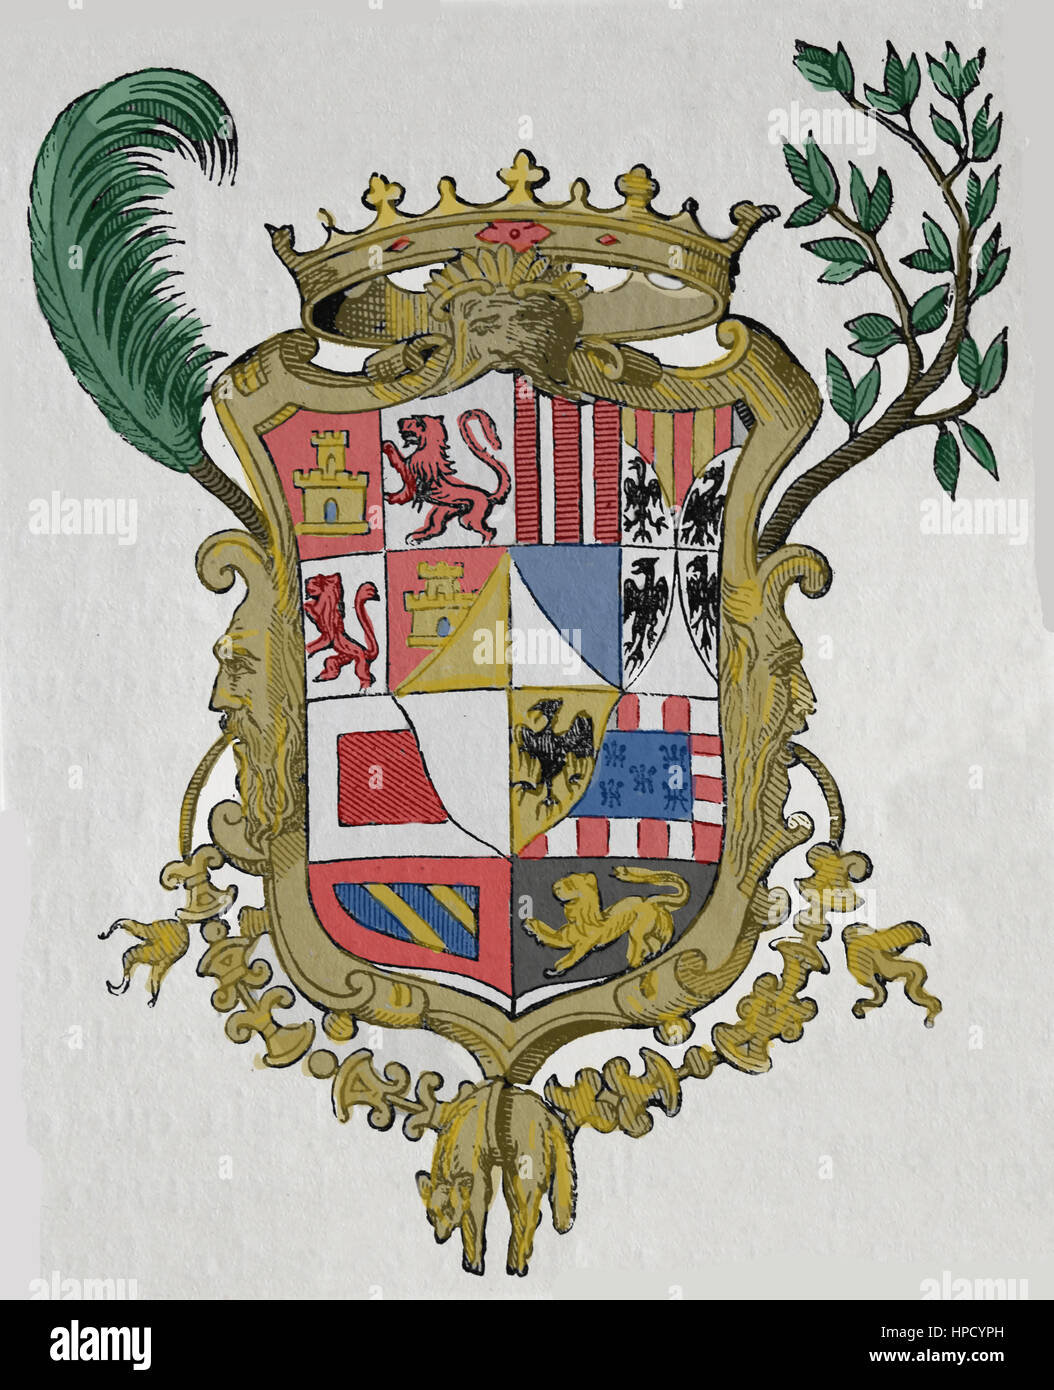 Coat of arms of Don John of Austria (1547-1578). Engraving, 19th century. - Stock Image